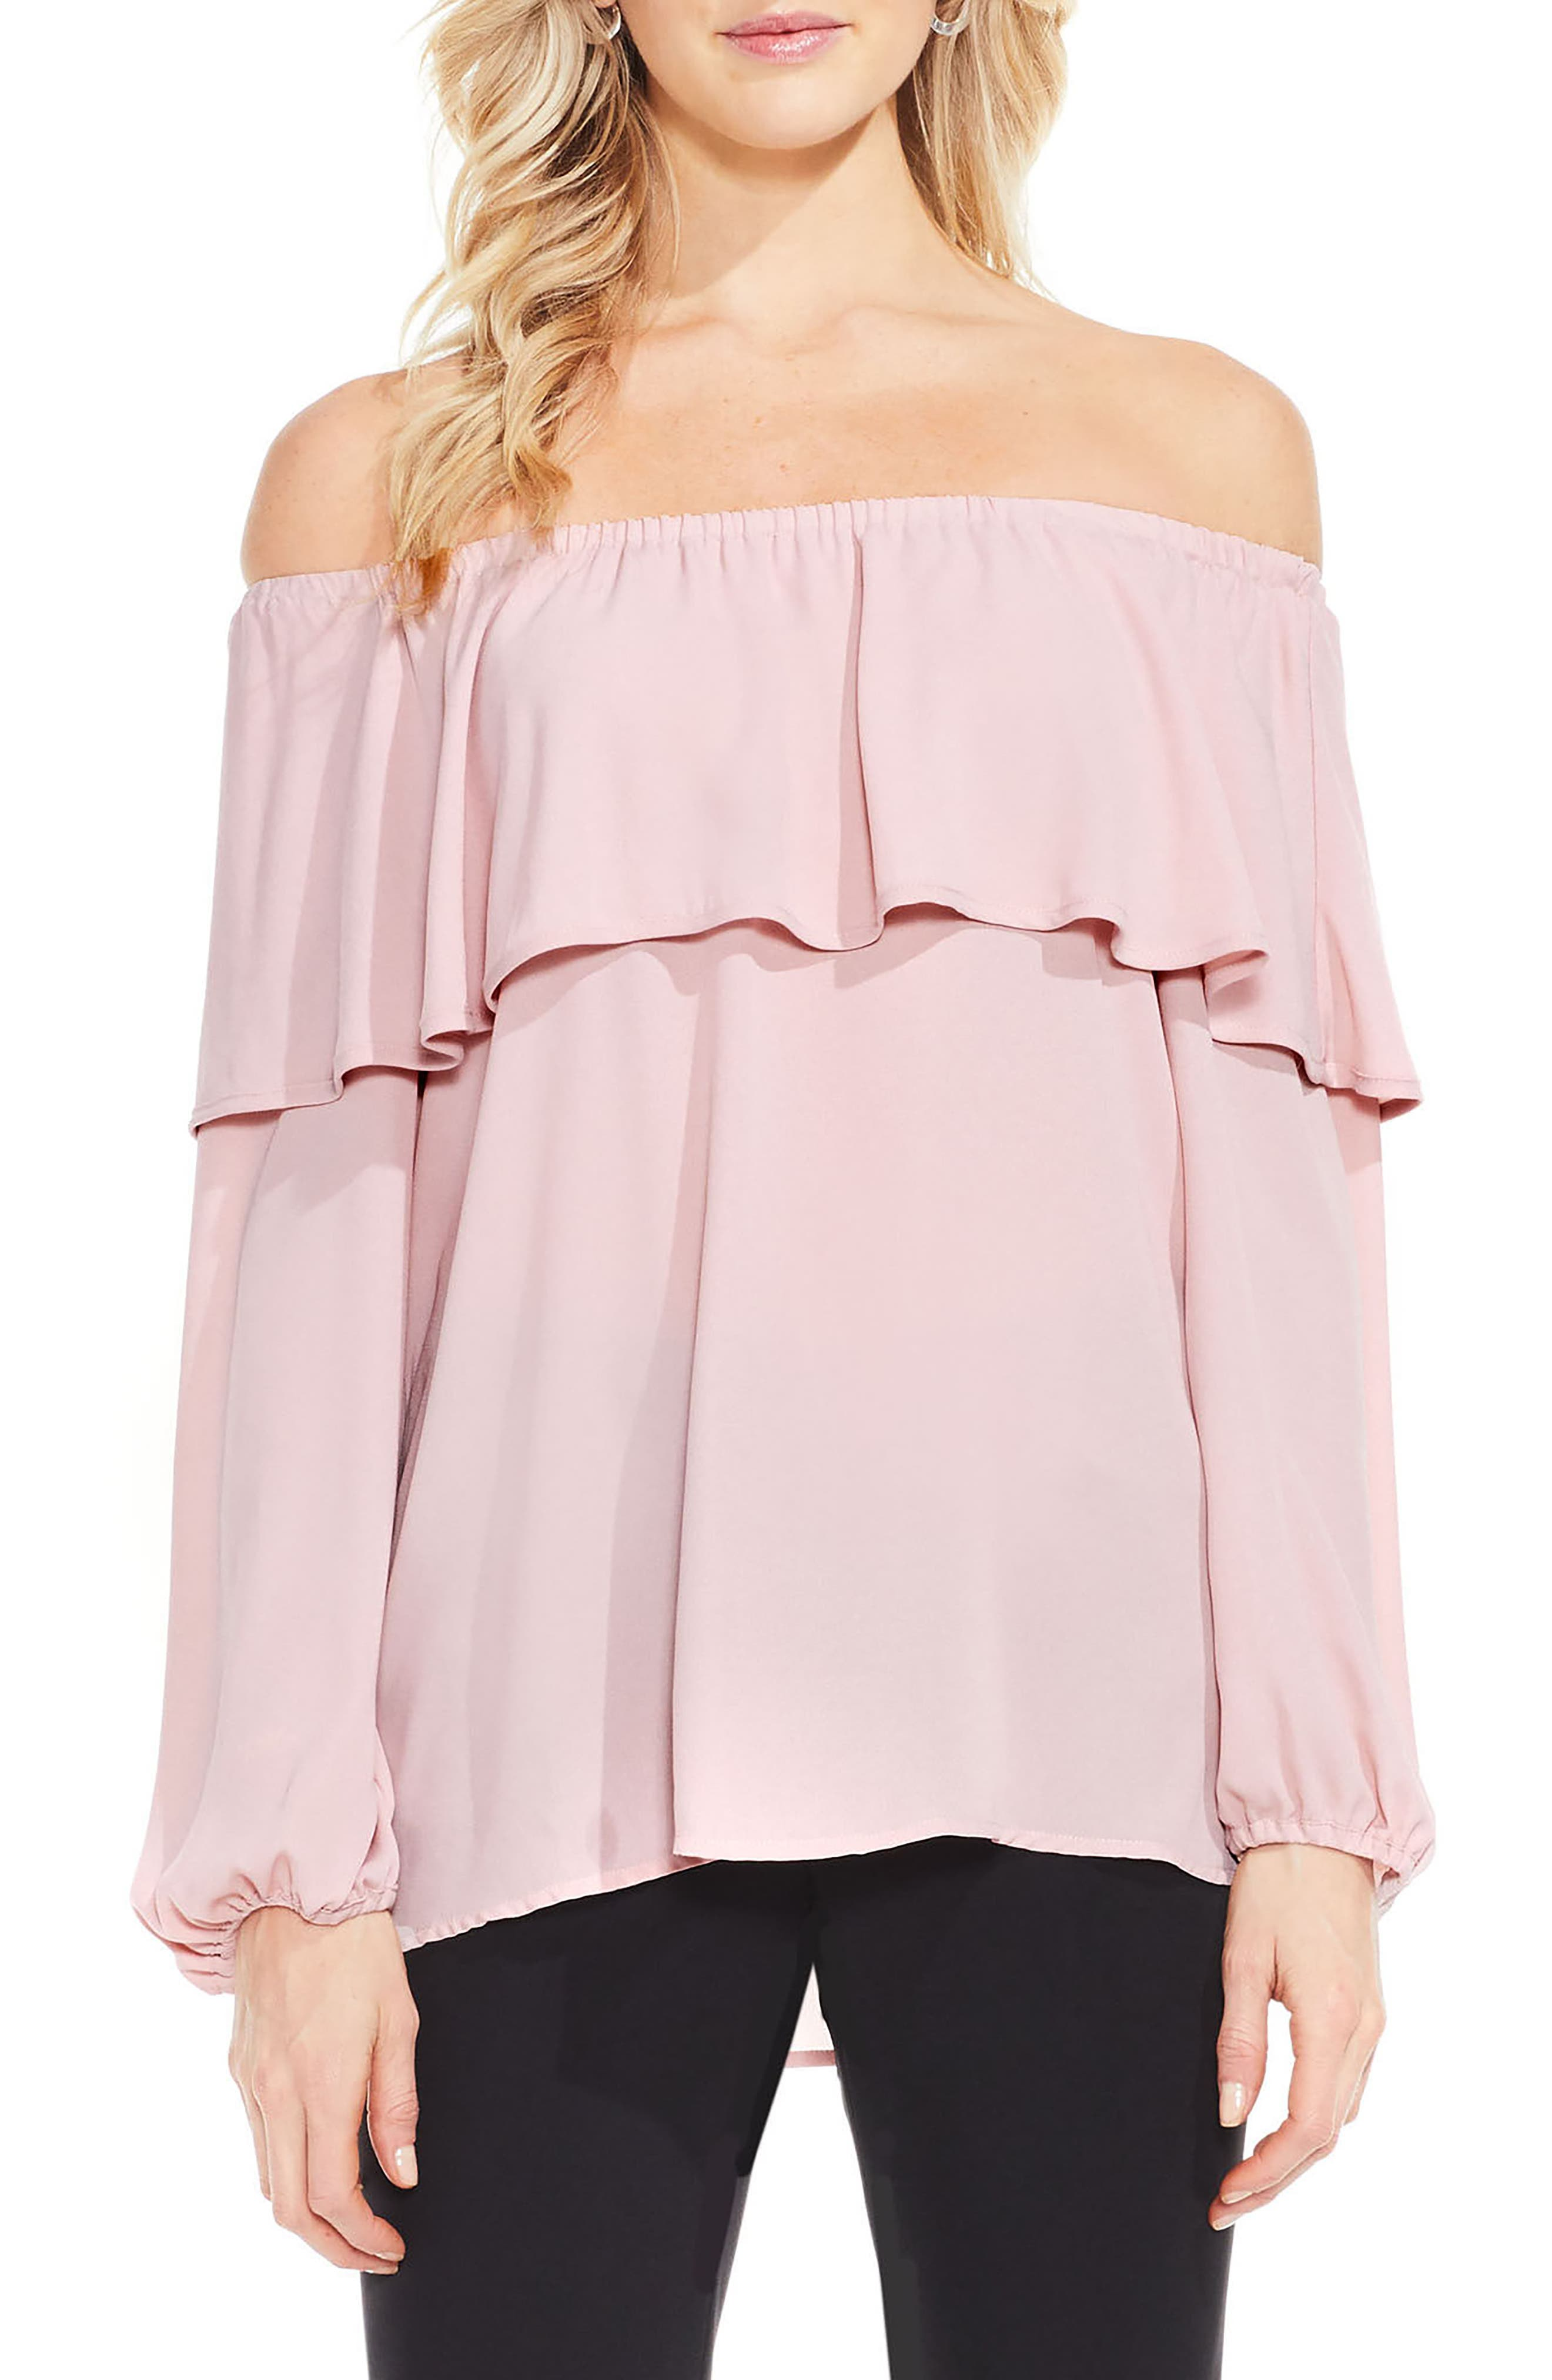 Ruffle Off the Shoulder Blouse,                             Main thumbnail 1, color,                             Iced Rose